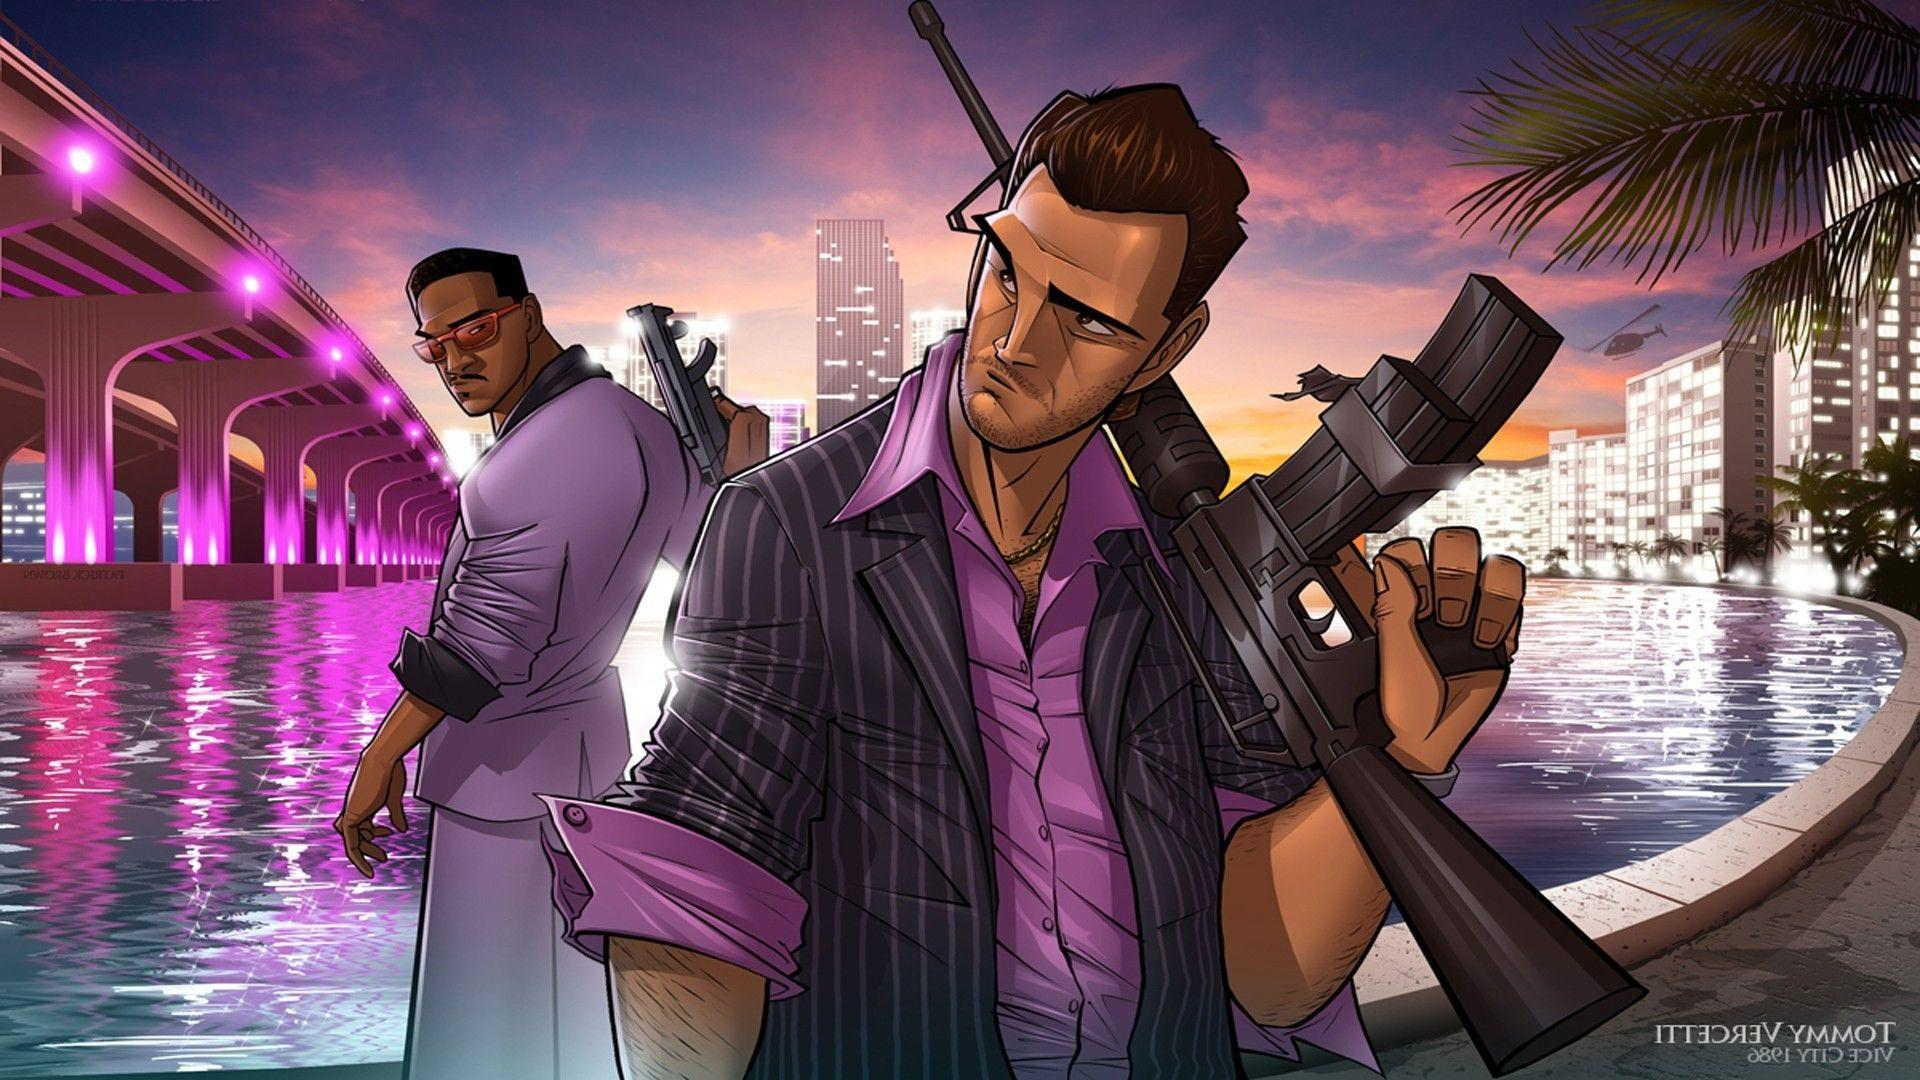 Grand Theft Auto: Vice City Wallpapers - Wallpaper Cave